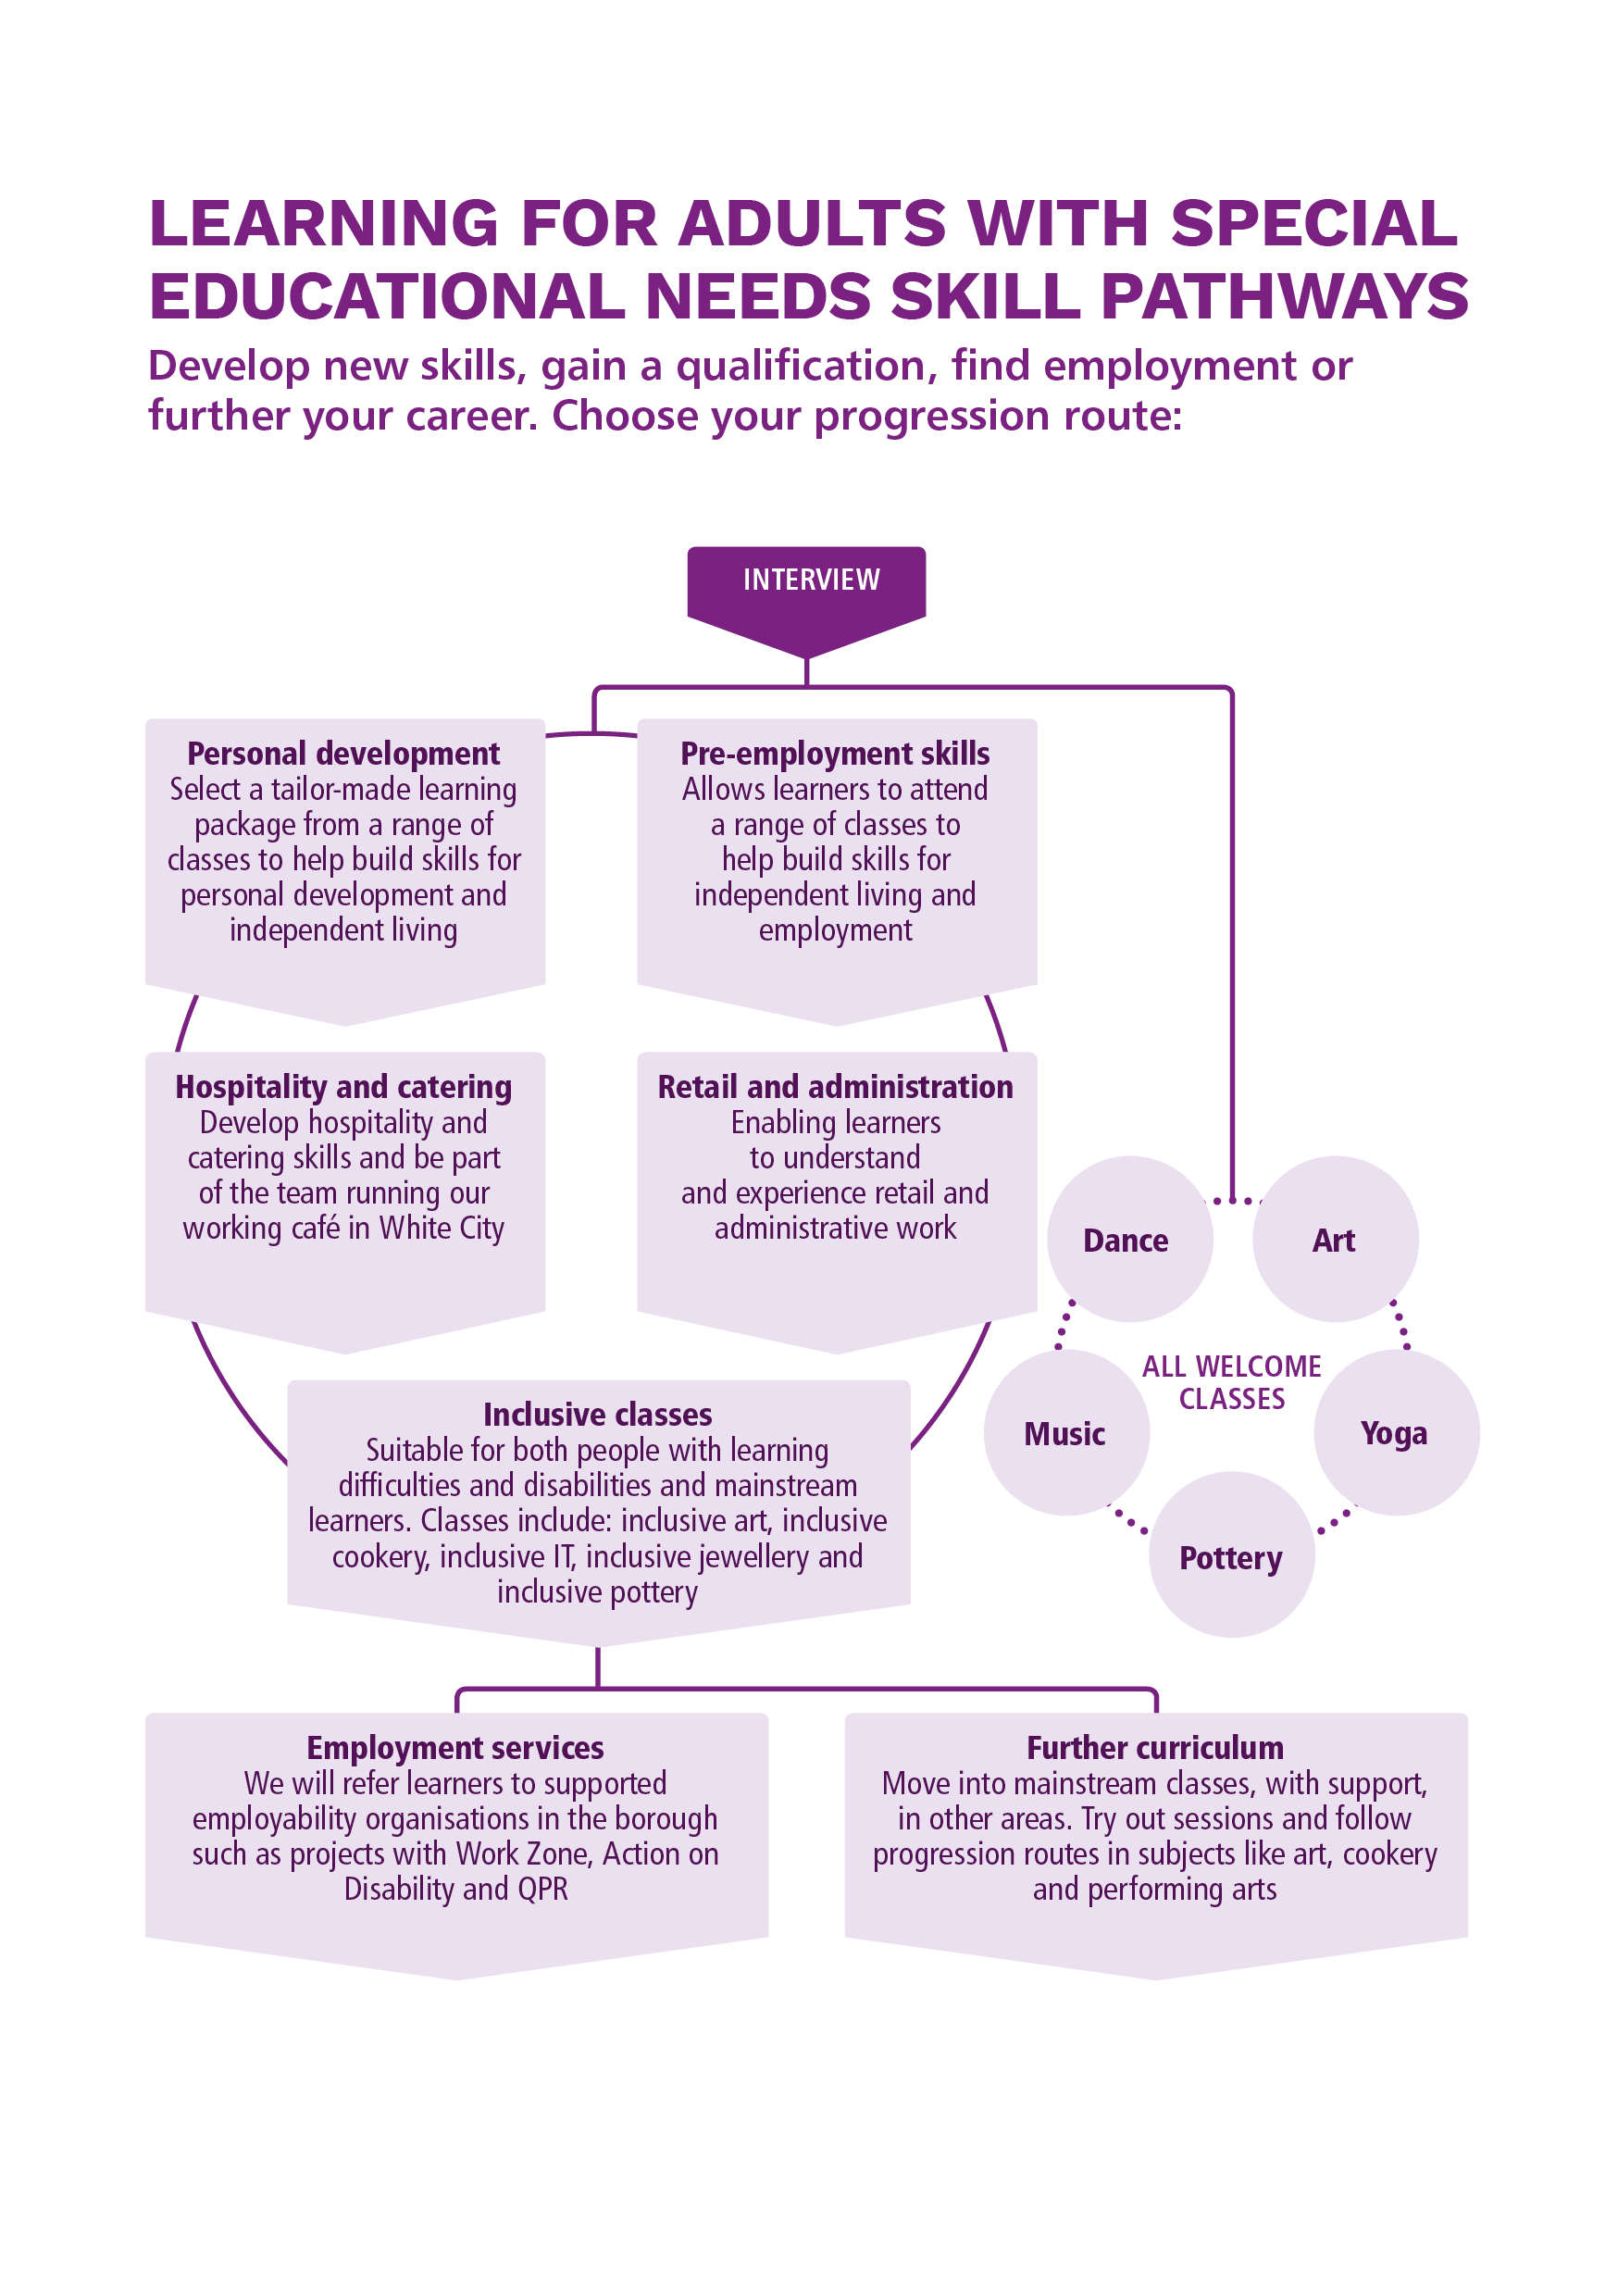 Special educational needs skills pathway